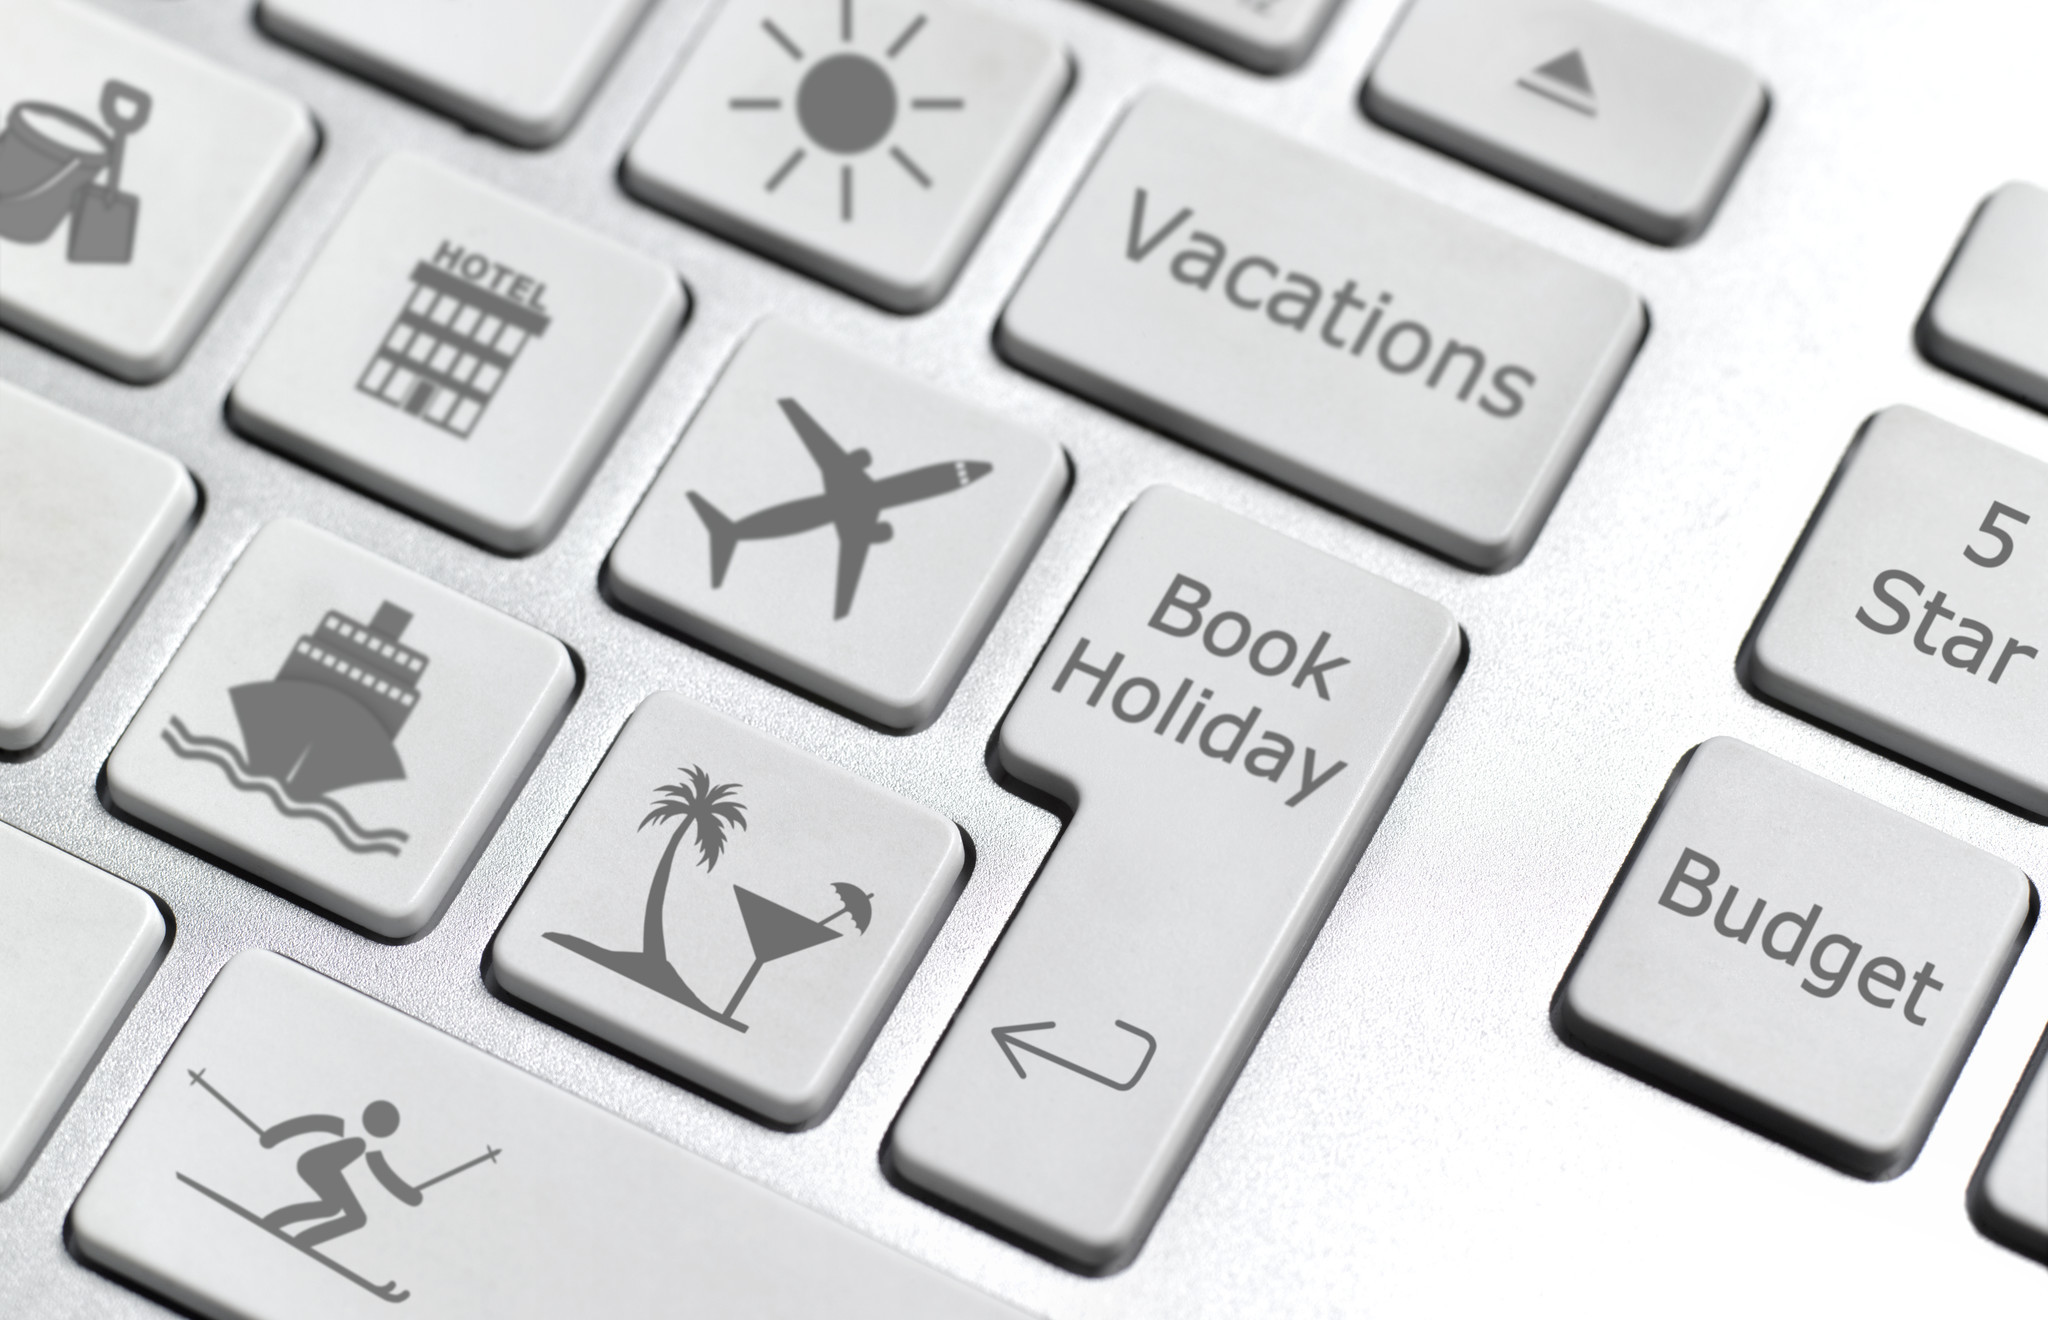 7 secrets to booking cheaper flights, according to travel experts